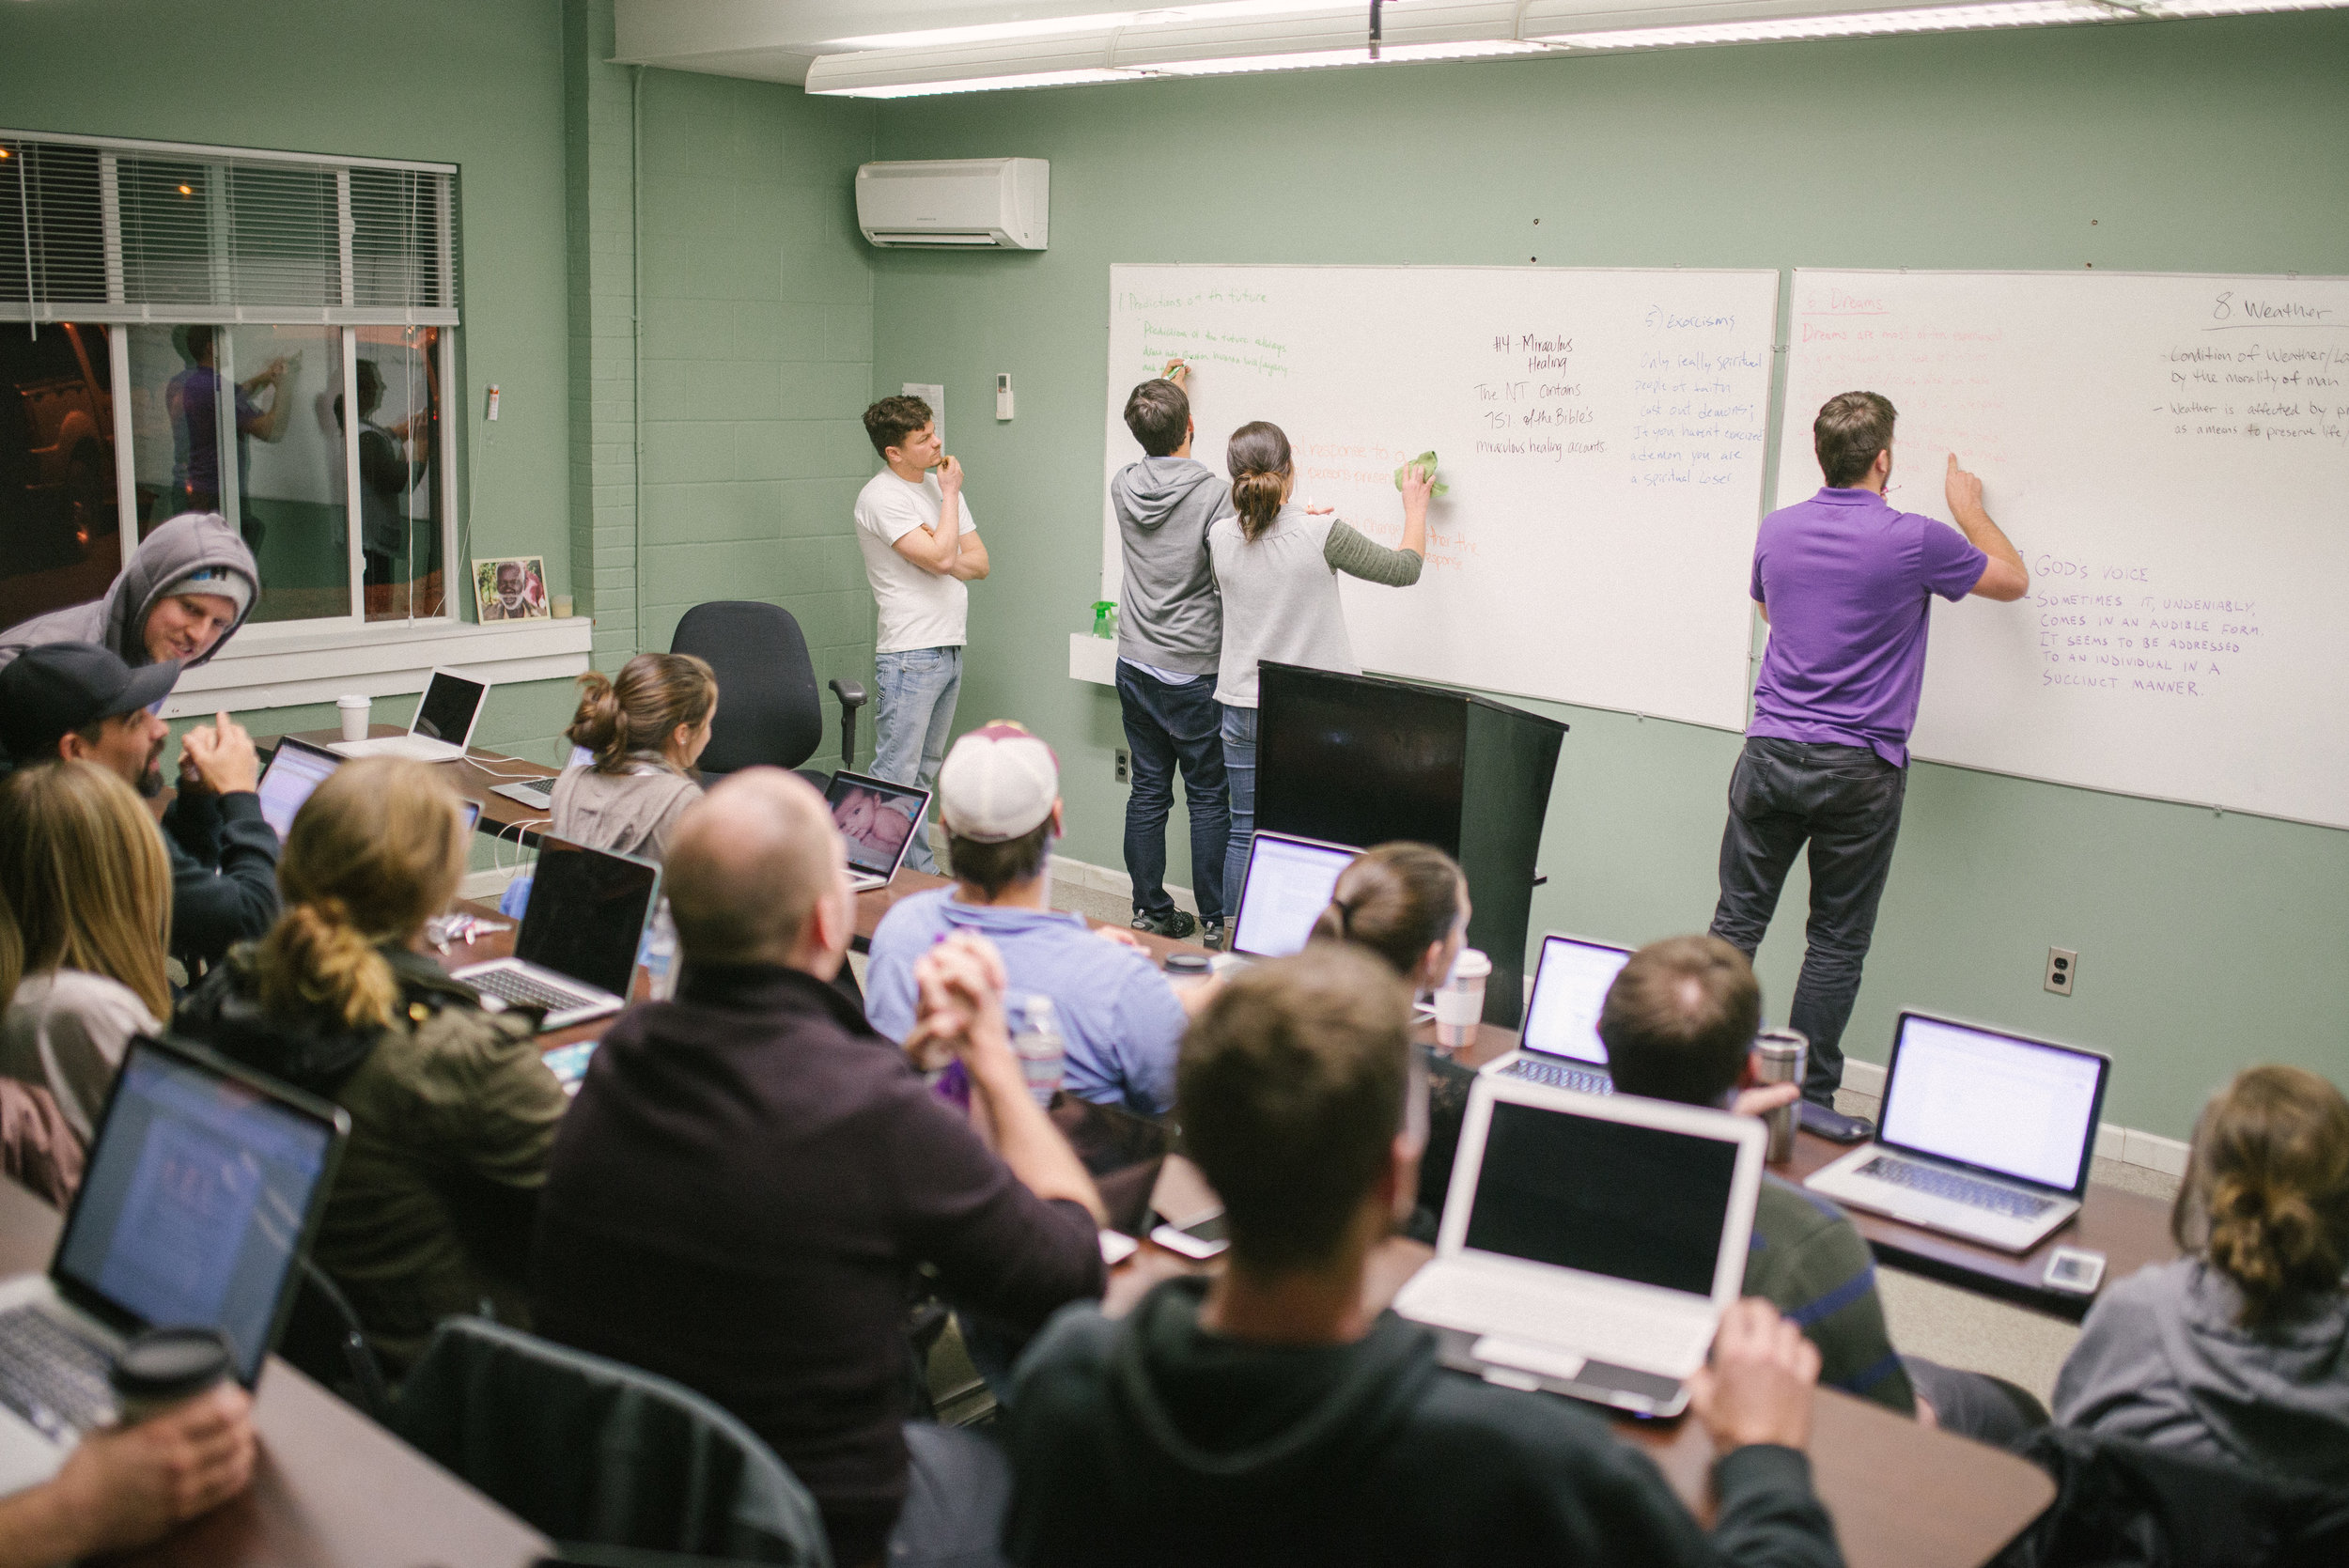 If you ask a graduate of the Institute what they're up to, you may be surprised to hear that they are still taking classes! We prioritize learning the Word of God, even after the completion of our undergraduate program, and create intentional venues conducive for everyone, from moms to handymen, to discuss God's Word.